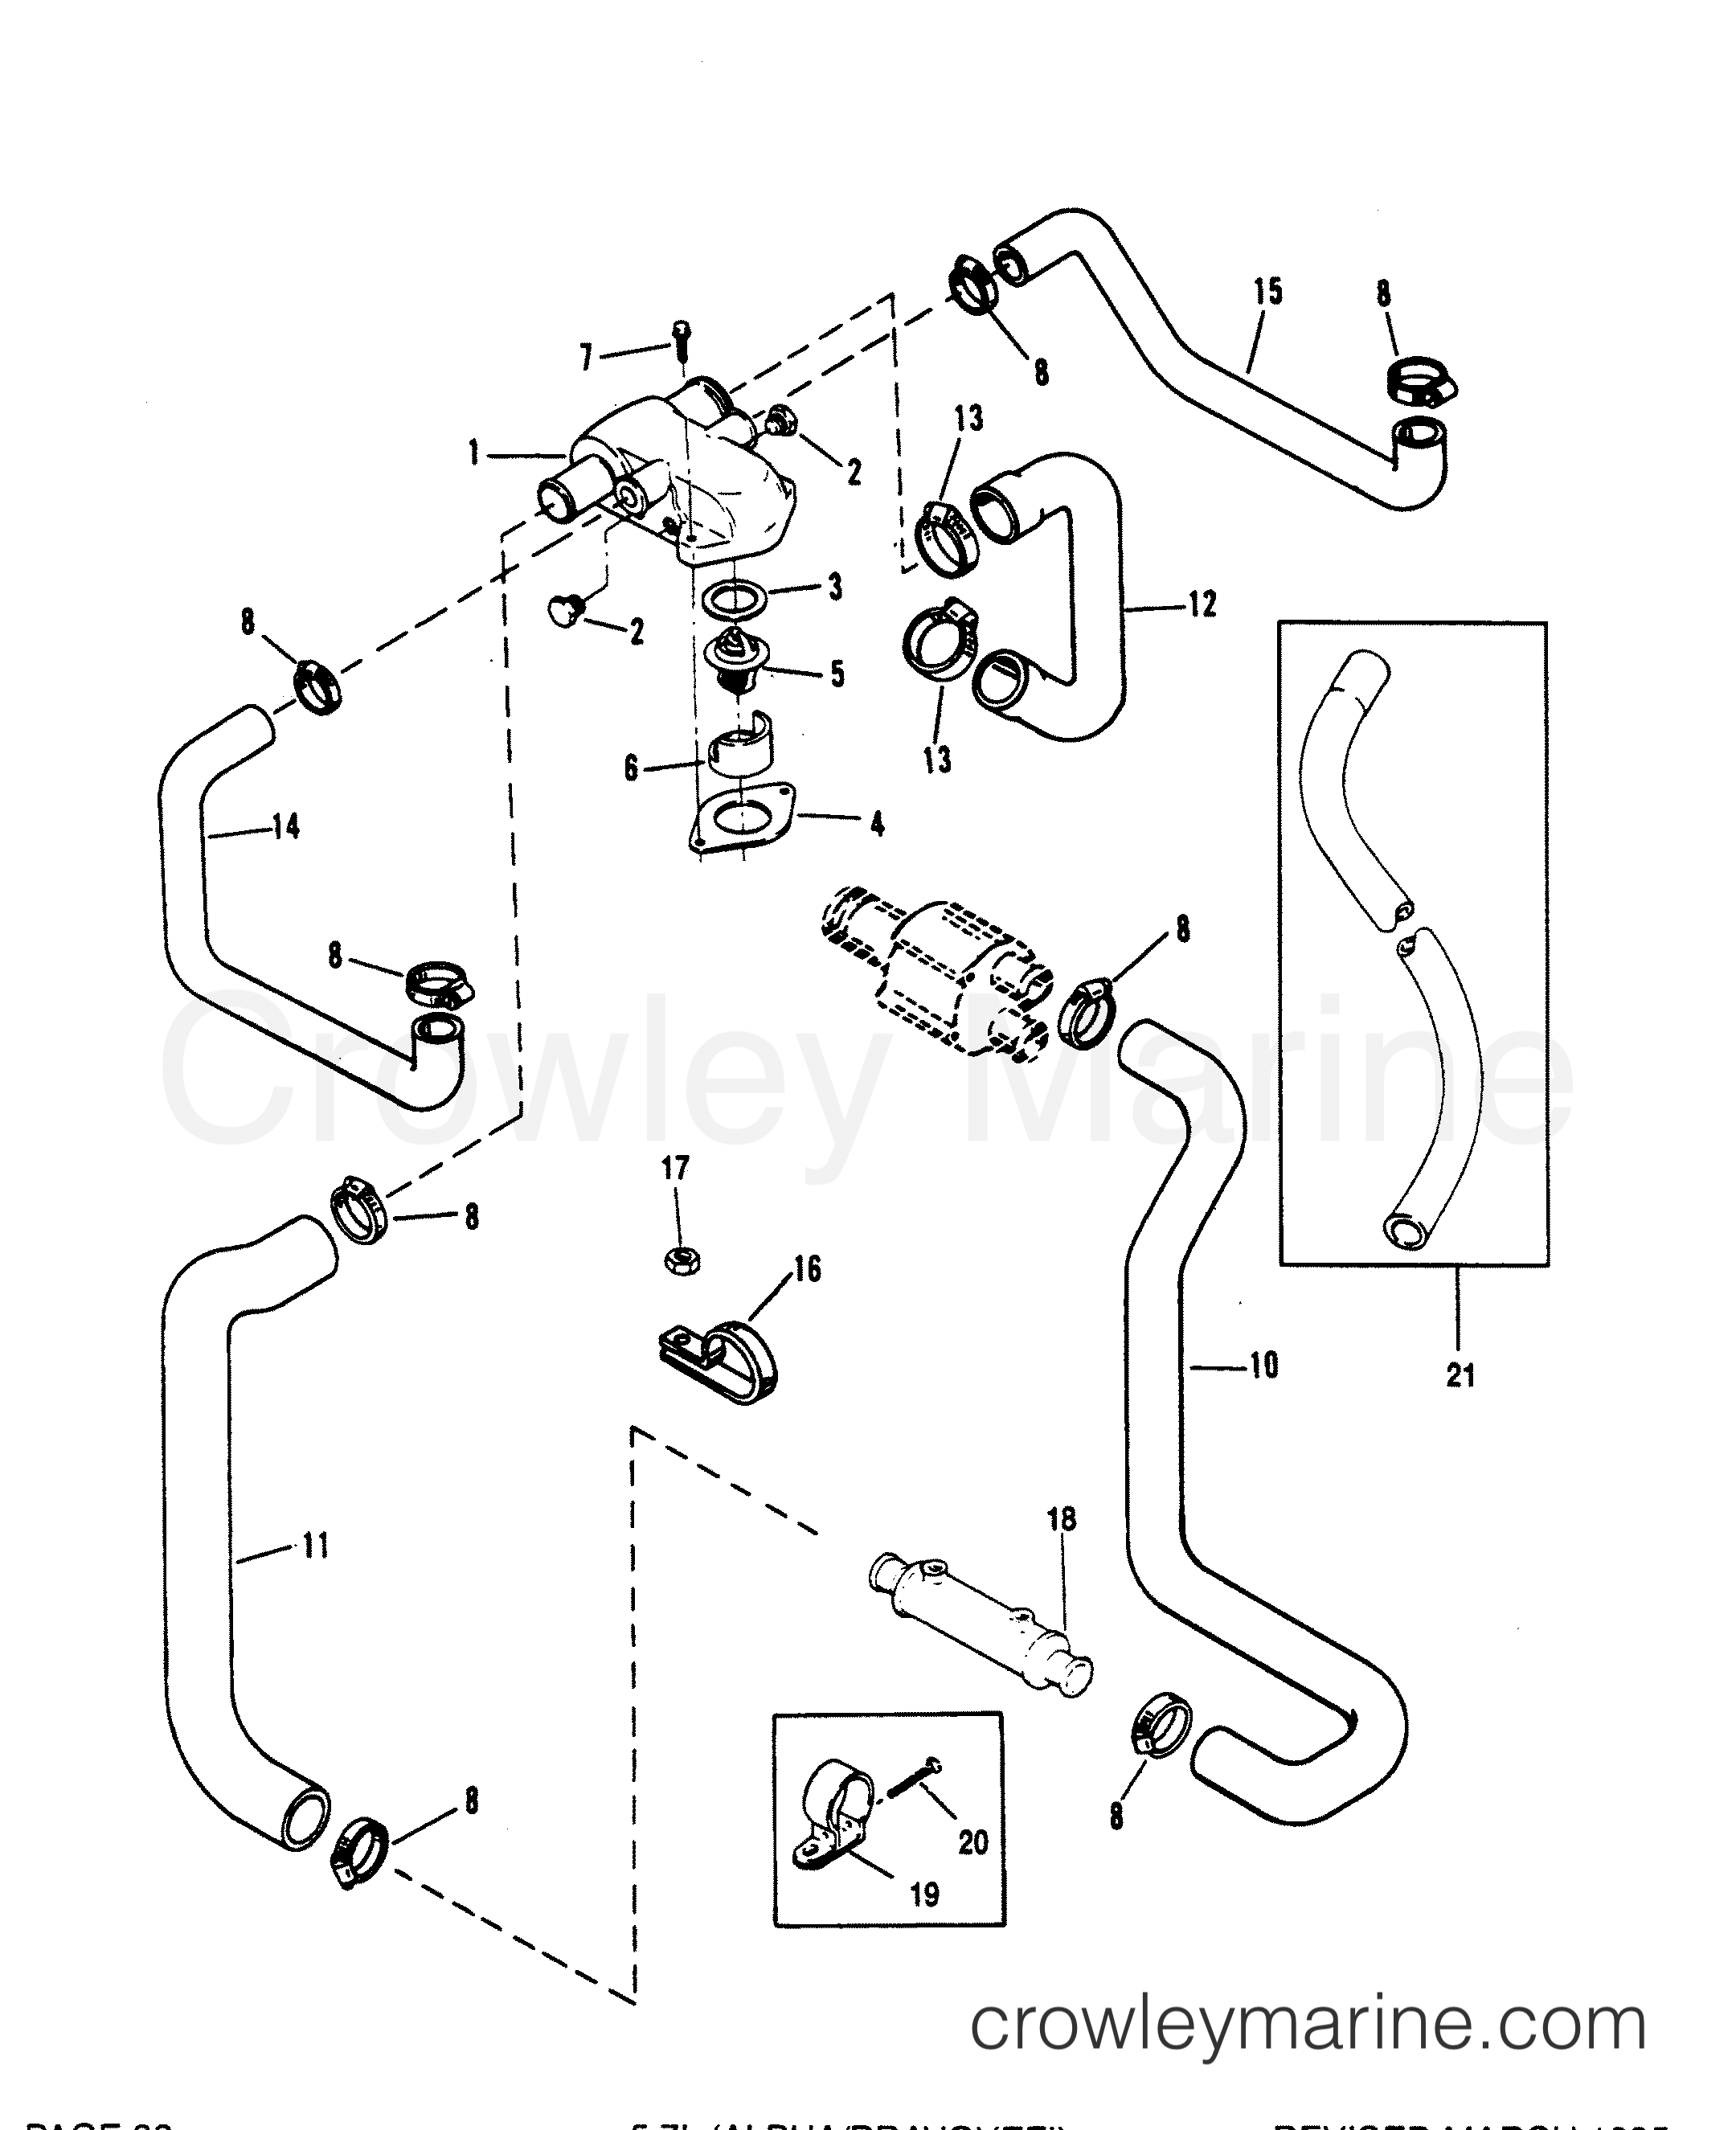 Mercruiser 5 7 Cooling System Diagram